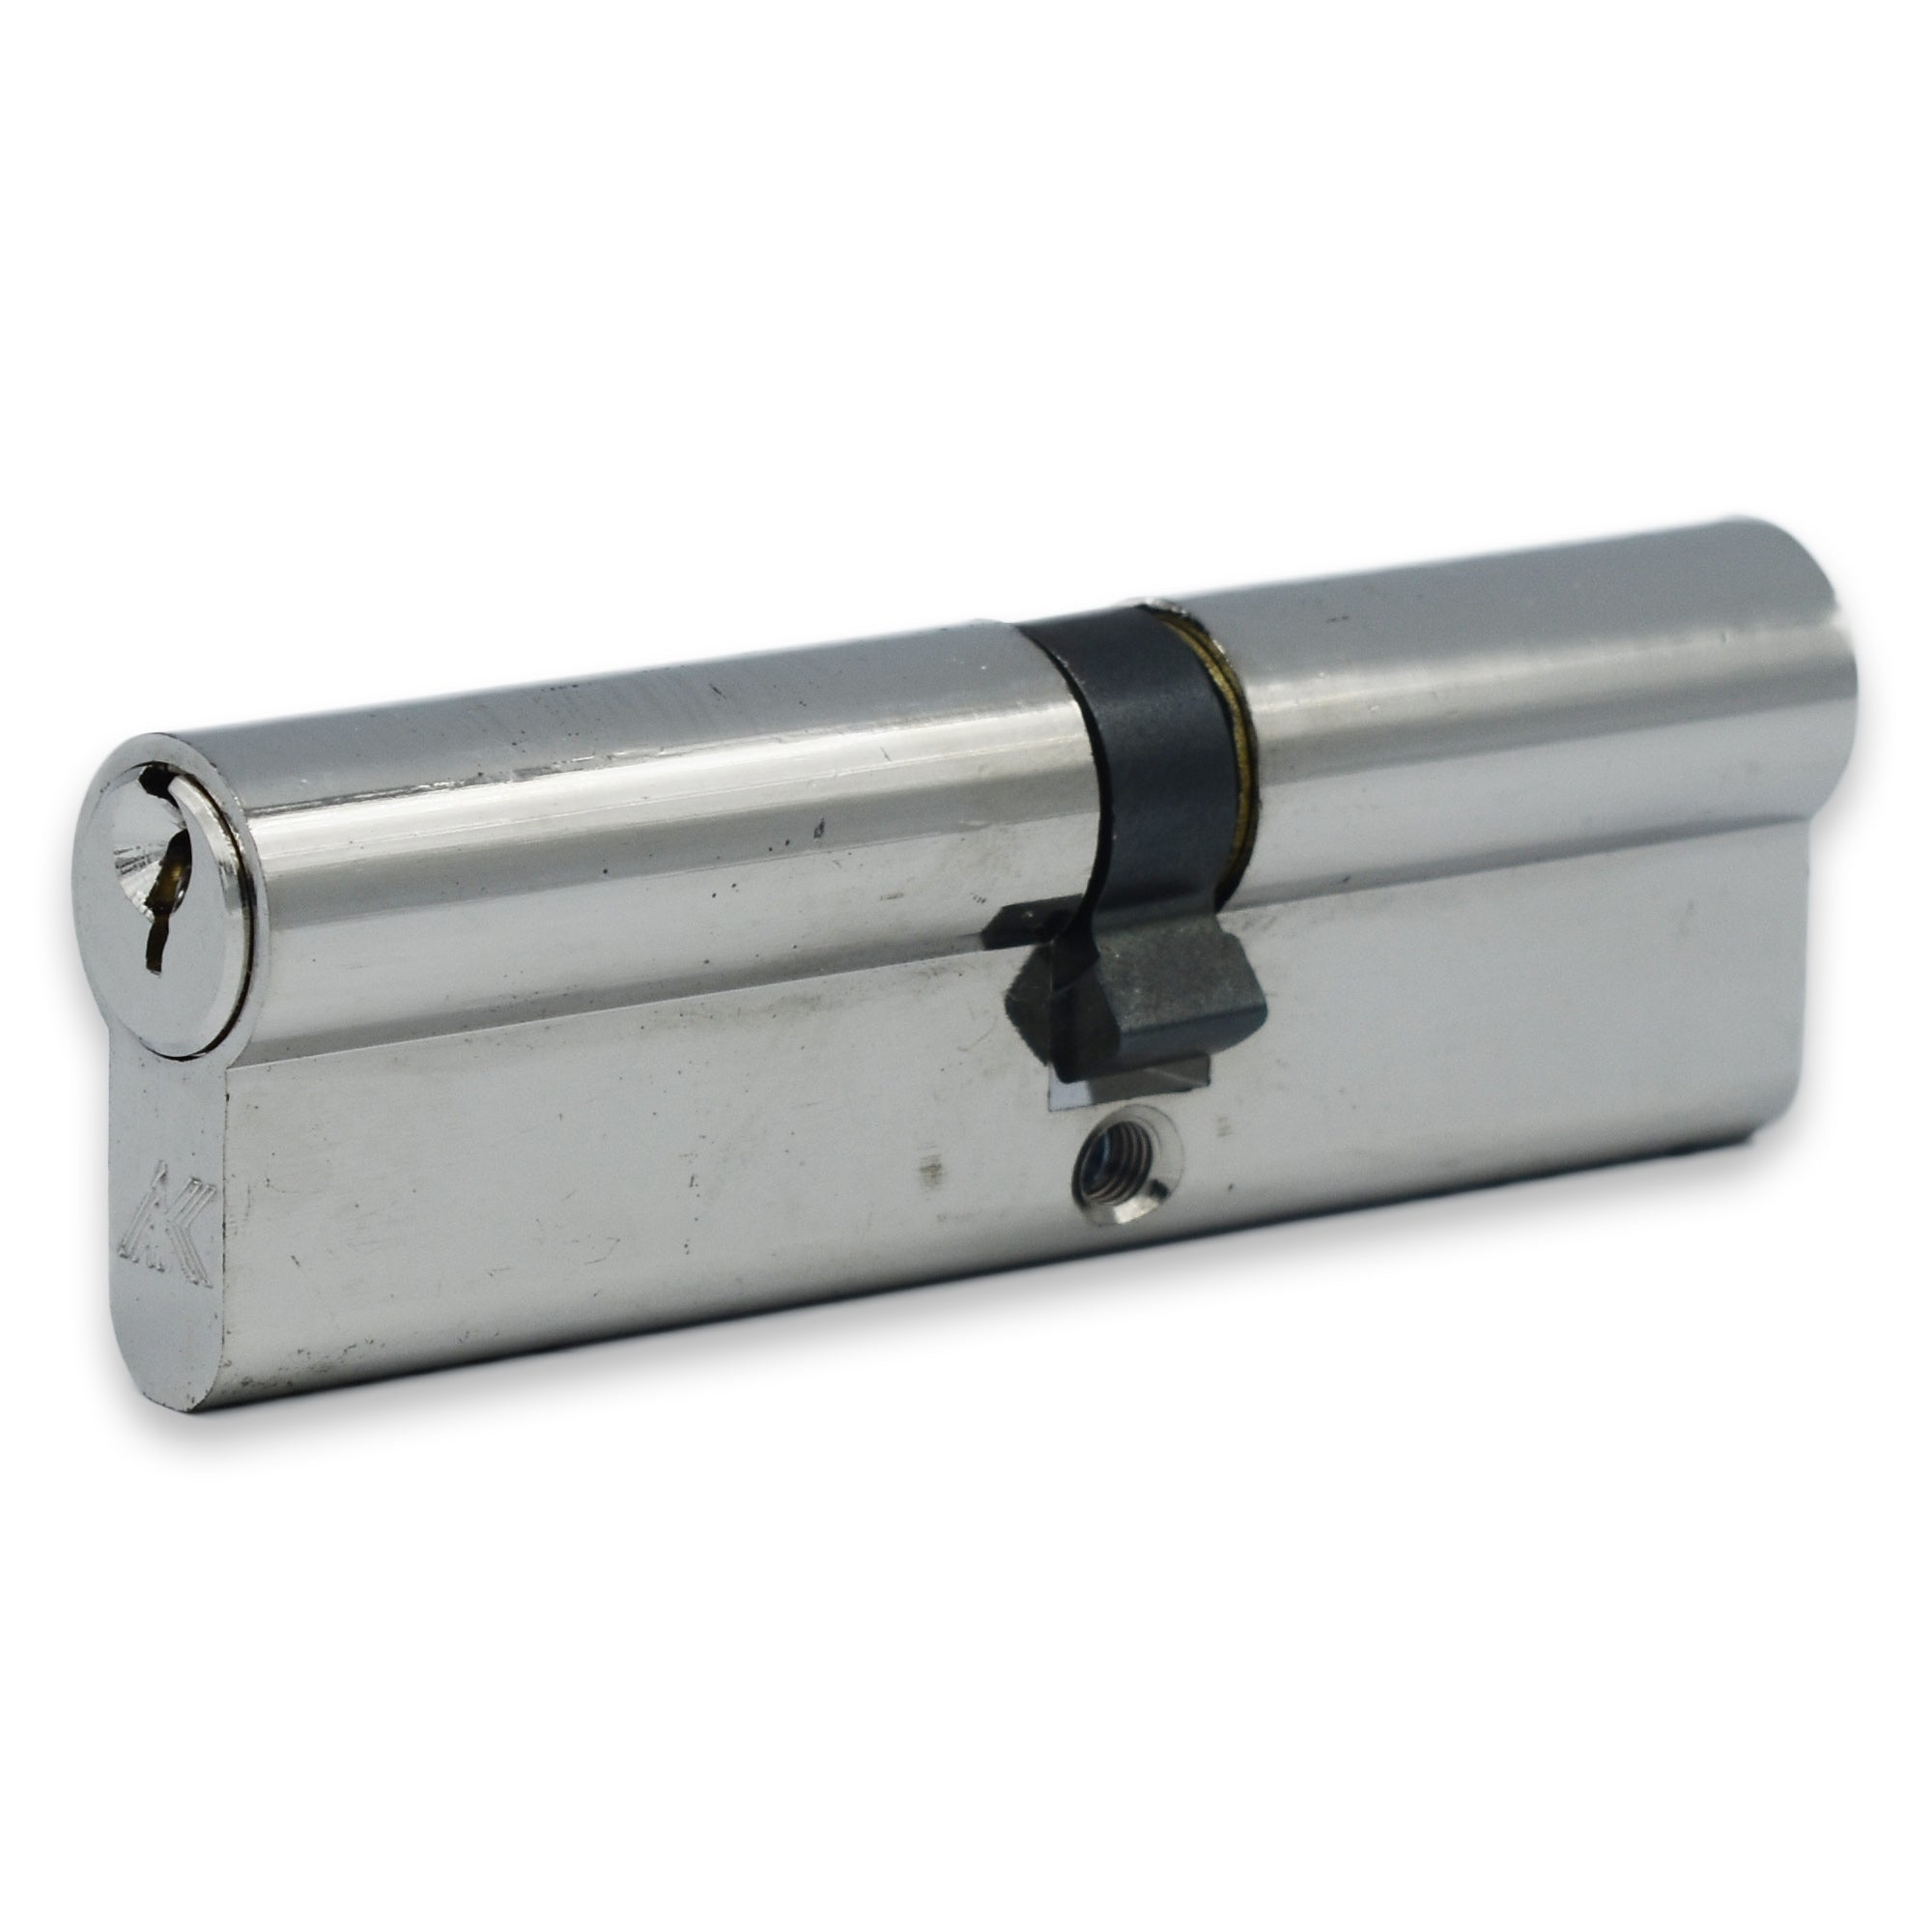 Kenrick 6 Pin Chrome Euro Cylinder ( 45 / 55 ) -  - UPVCSTORE - UPVCSTORE